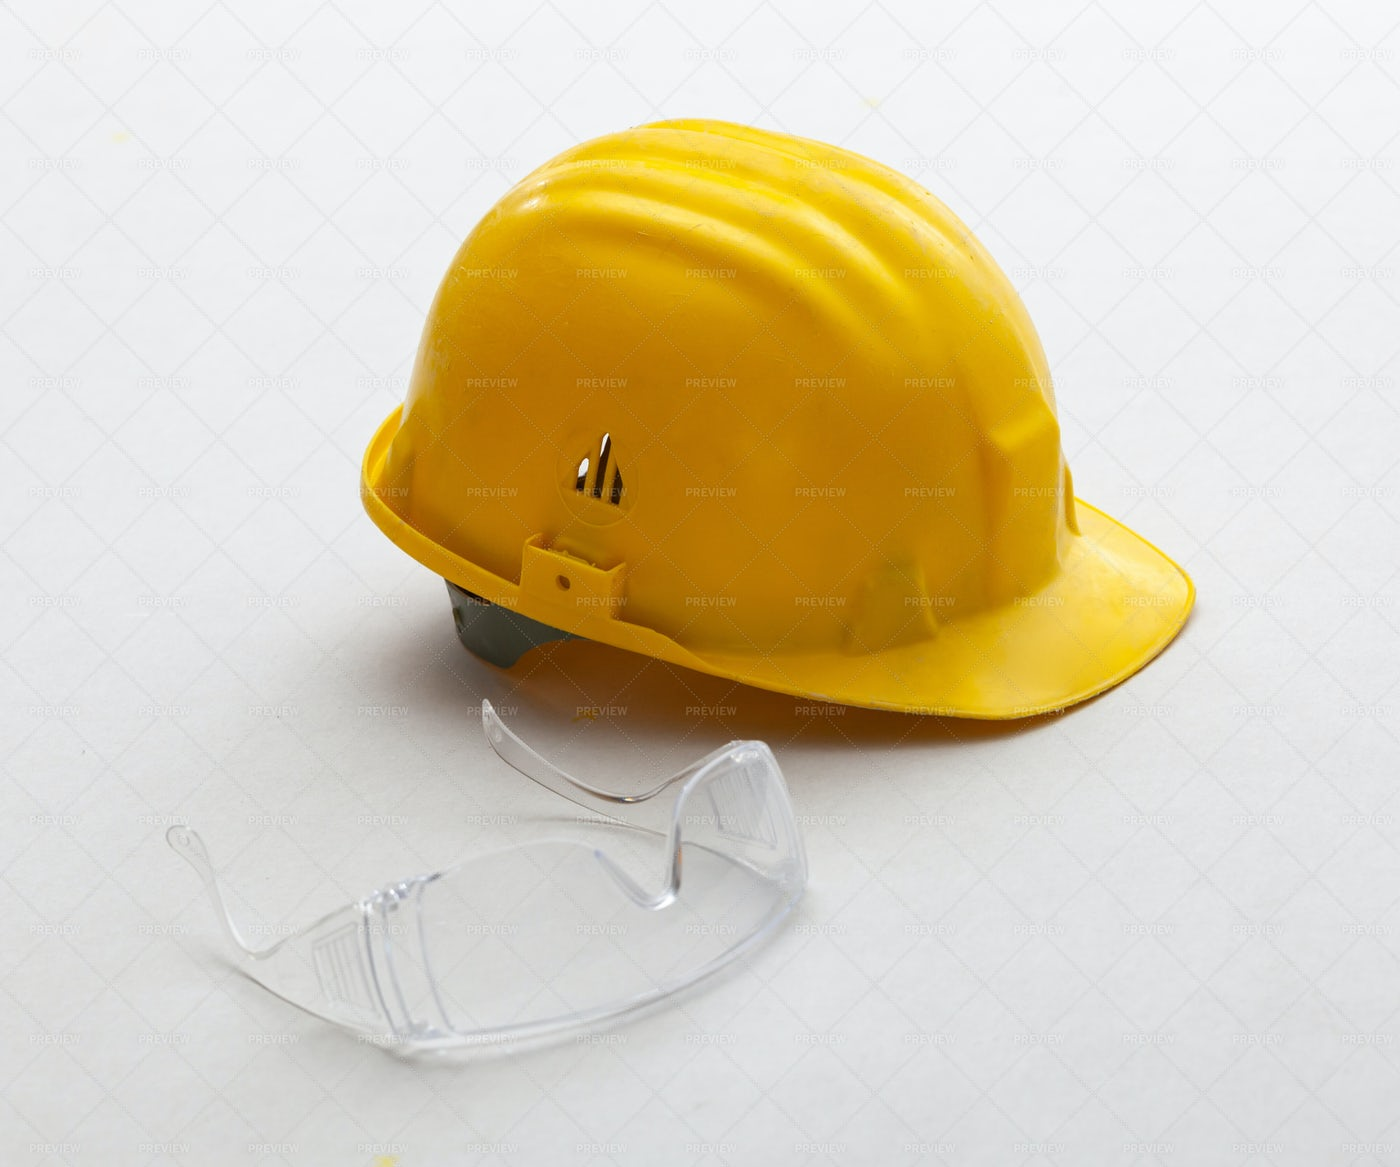 Helmet And Safety Glasses: Stock Photos